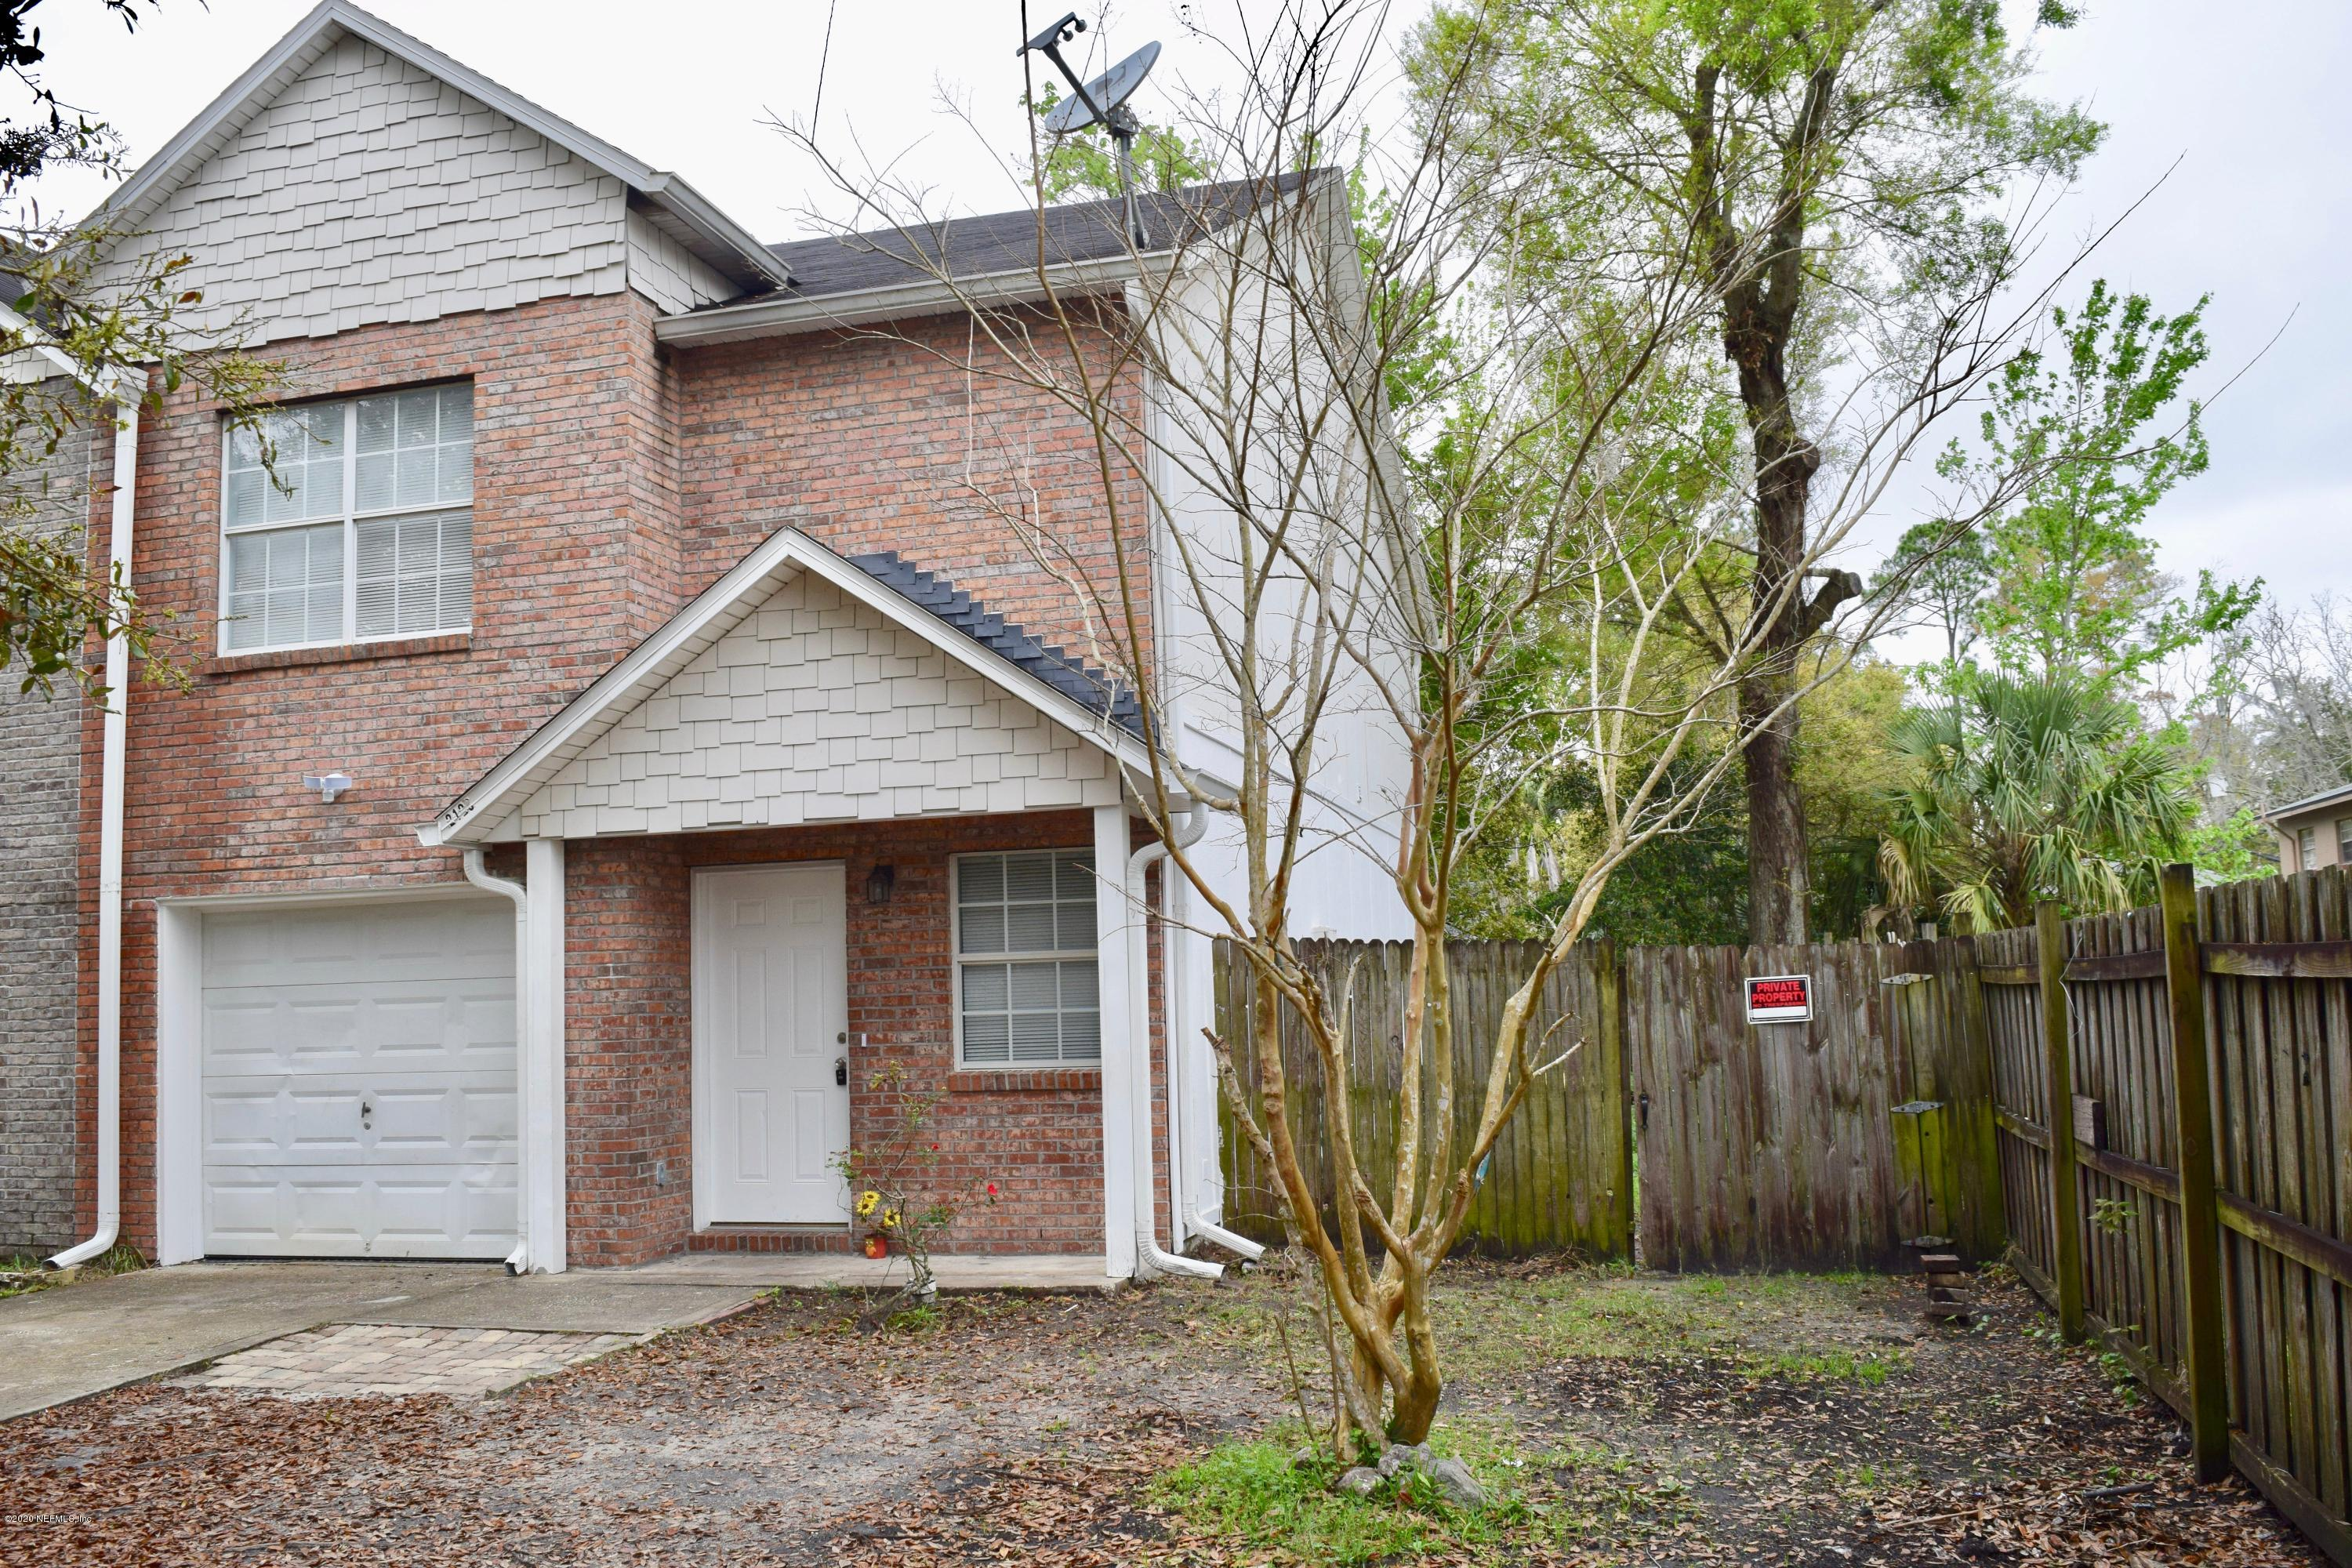 2129 ASHLAND, JACKSONVILLE, FLORIDA 32207, 3 Bedrooms Bedrooms, ,2 BathroomsBathrooms,Residential,For sale,ASHLAND,1080871